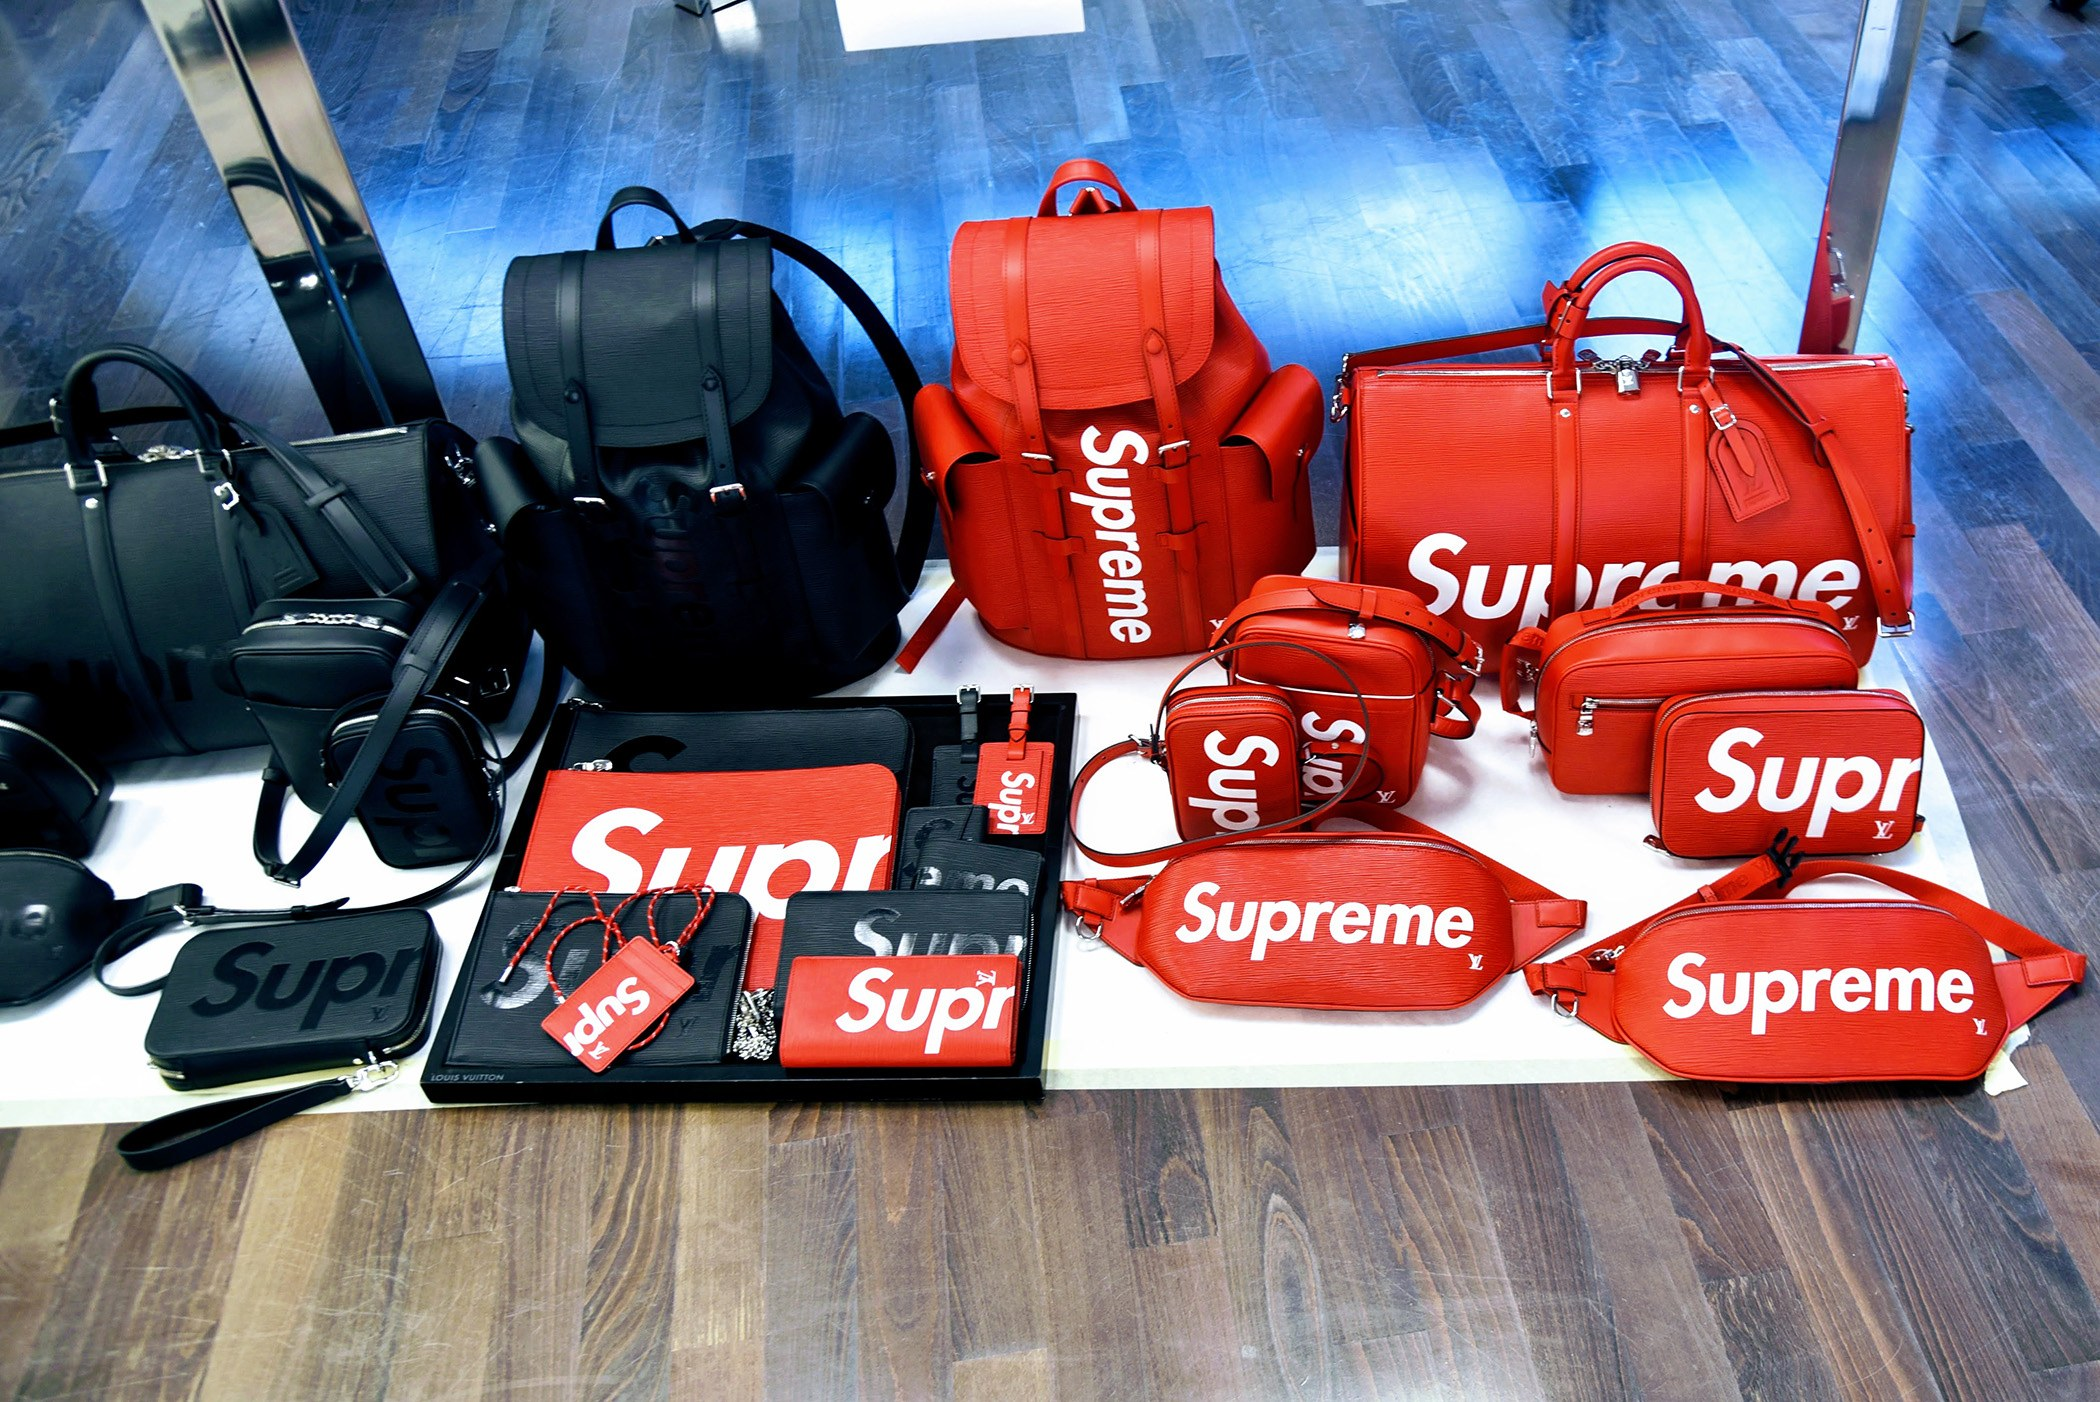 Louis Vuitton X Supreme Collaboration An Enduring Success Or Misread Experiment The Connector